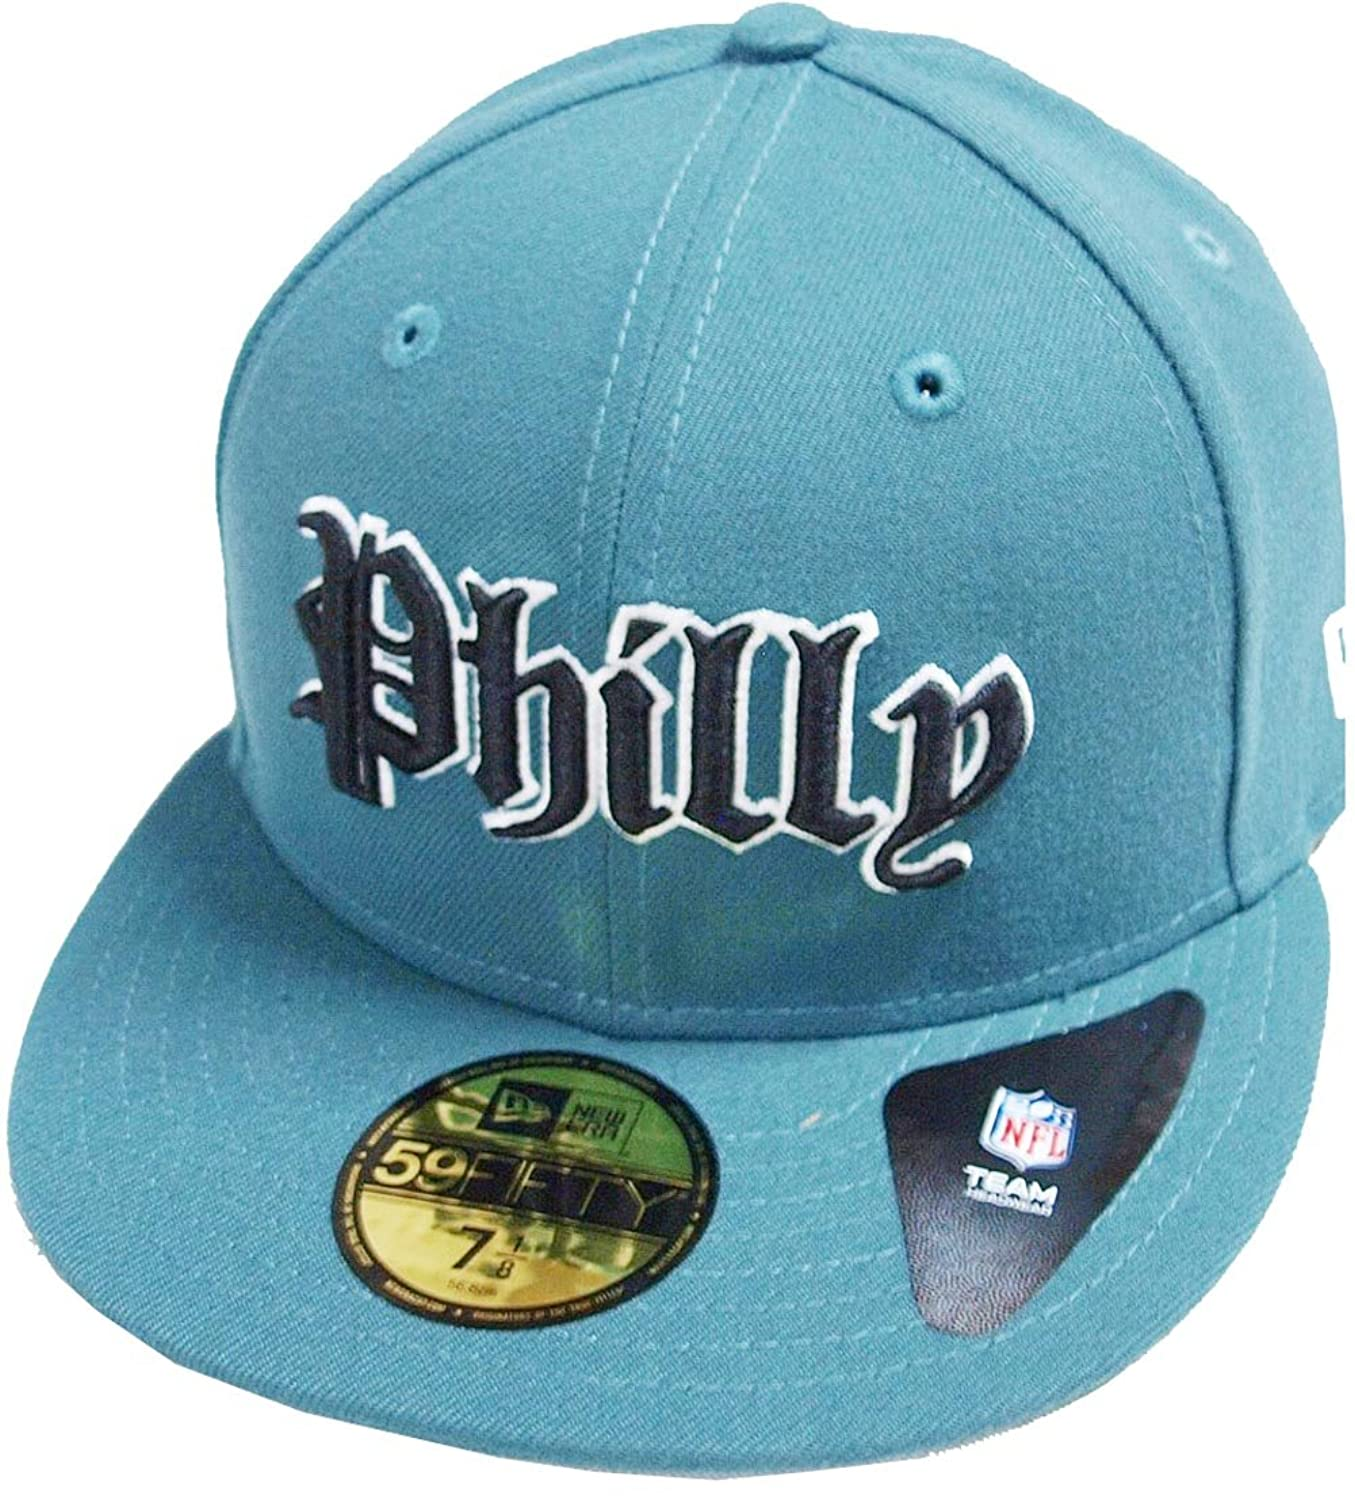 9f5f2e6a41 A NEW ERA Philadelphia Eagles Gothic Pine Needle Green NFL Cap 59fifty 5950  Fitted Basecap Kappe